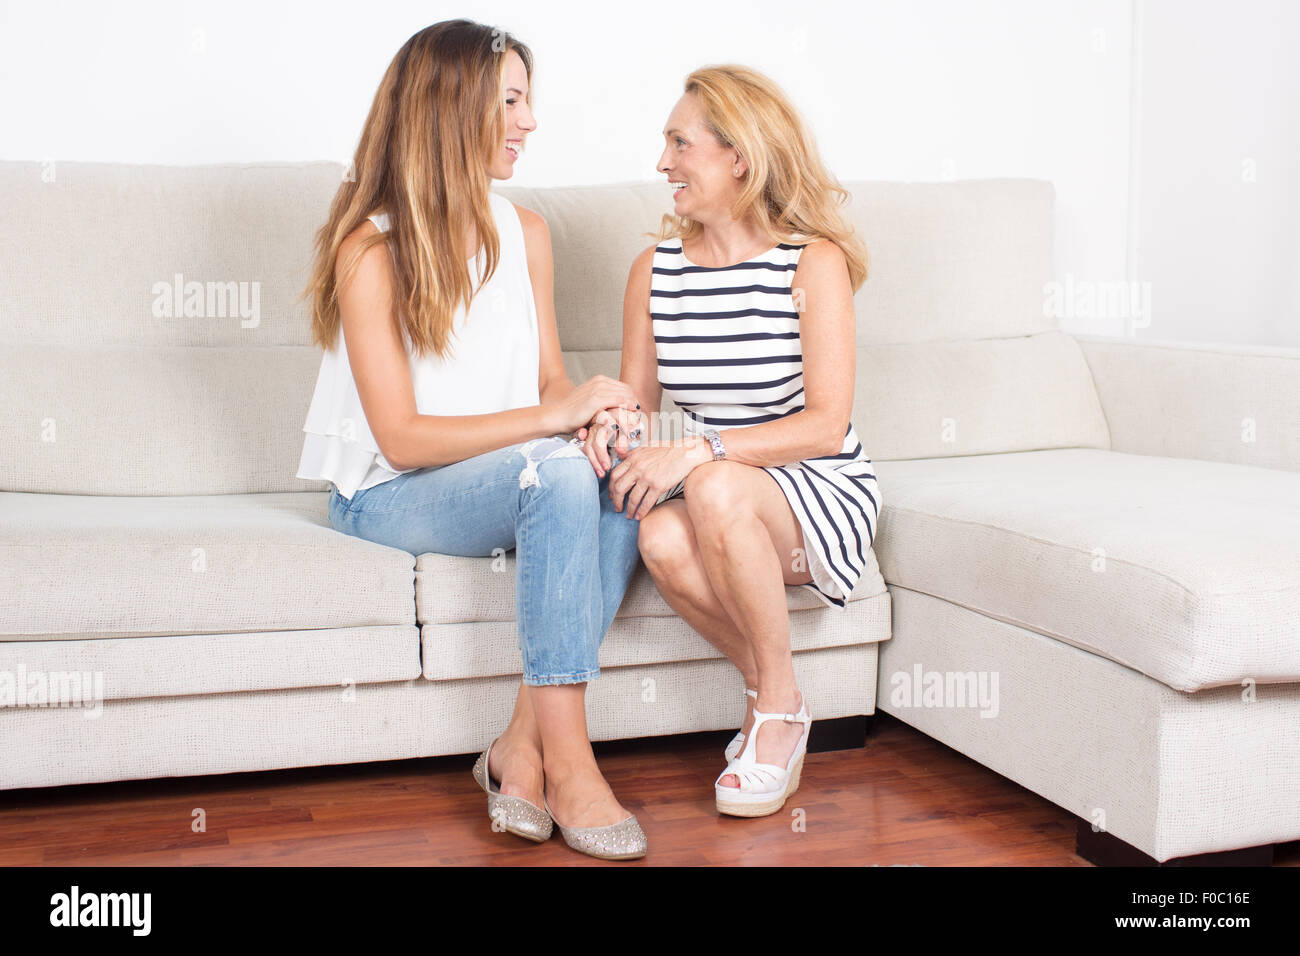 Elderly woman talking with a younger woman in the living room - Stock Image